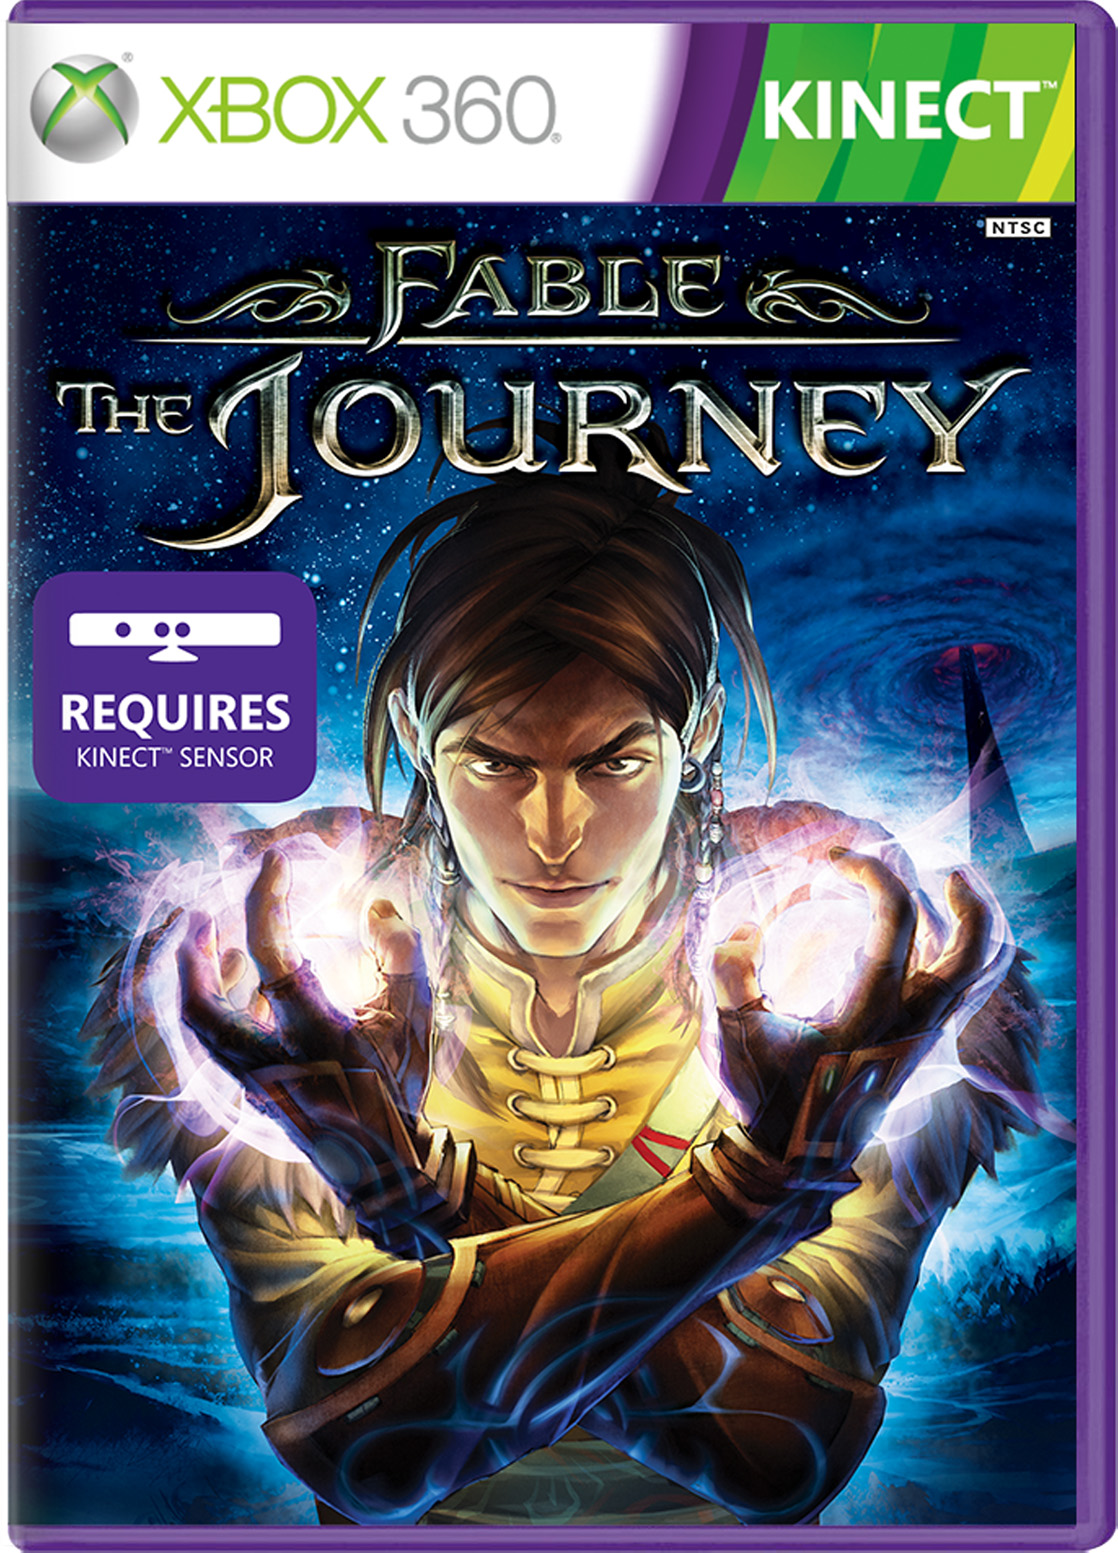 Fable: The Journey Xbox 360 Game for Kinect